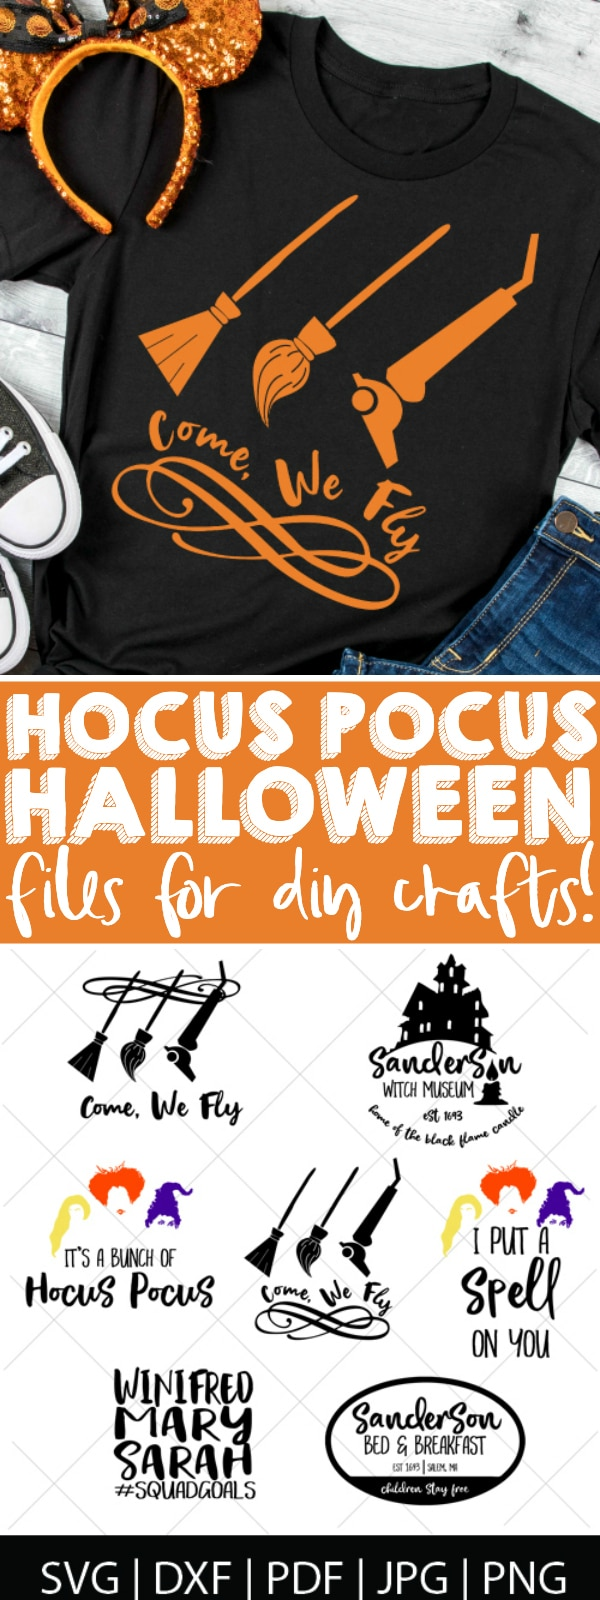 Come! We fly with our favorite witches - the Sanderson sisters!! Create a Disney Halloween with this Hocus Pocus SVG Bundle! These digital files are perfect for making DIY Halloween shirts that are great for your trip to Disney World, as well as Halloween decor and invites! | The Love Nerds #Disneycricut #diyHalloween